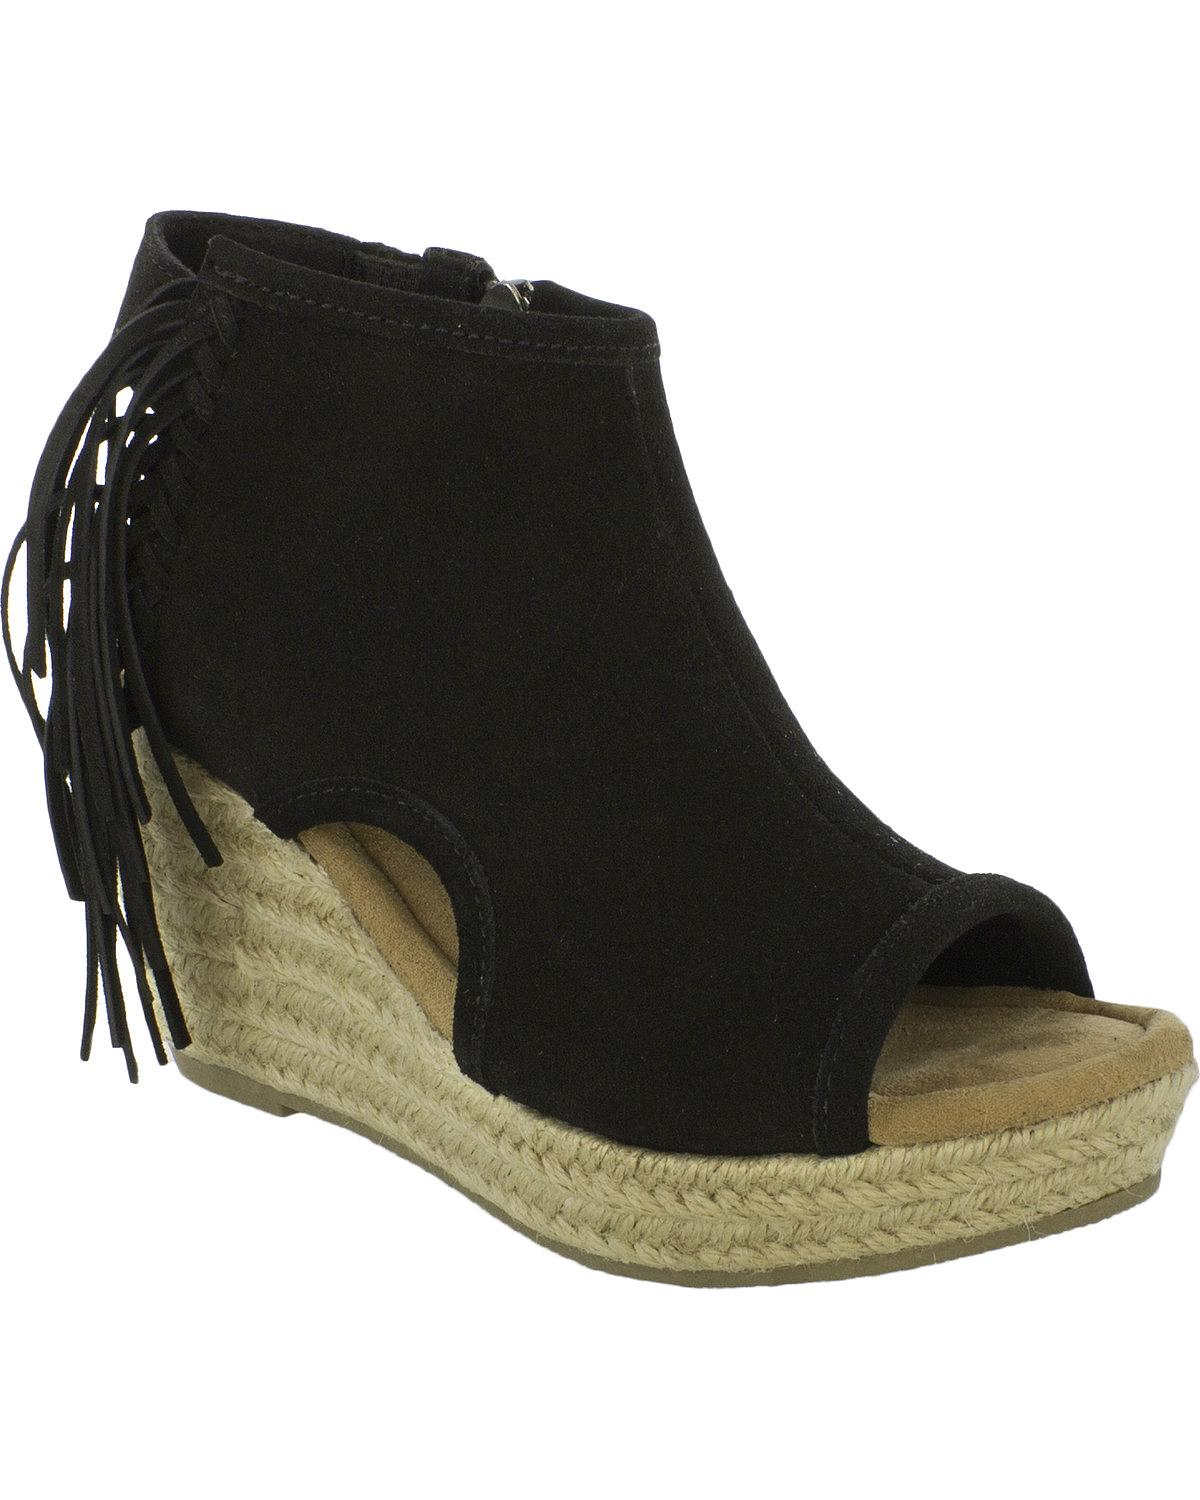 Minnetonka Women's Blaire Wedge Sandals 71330Blk by Minnetonka